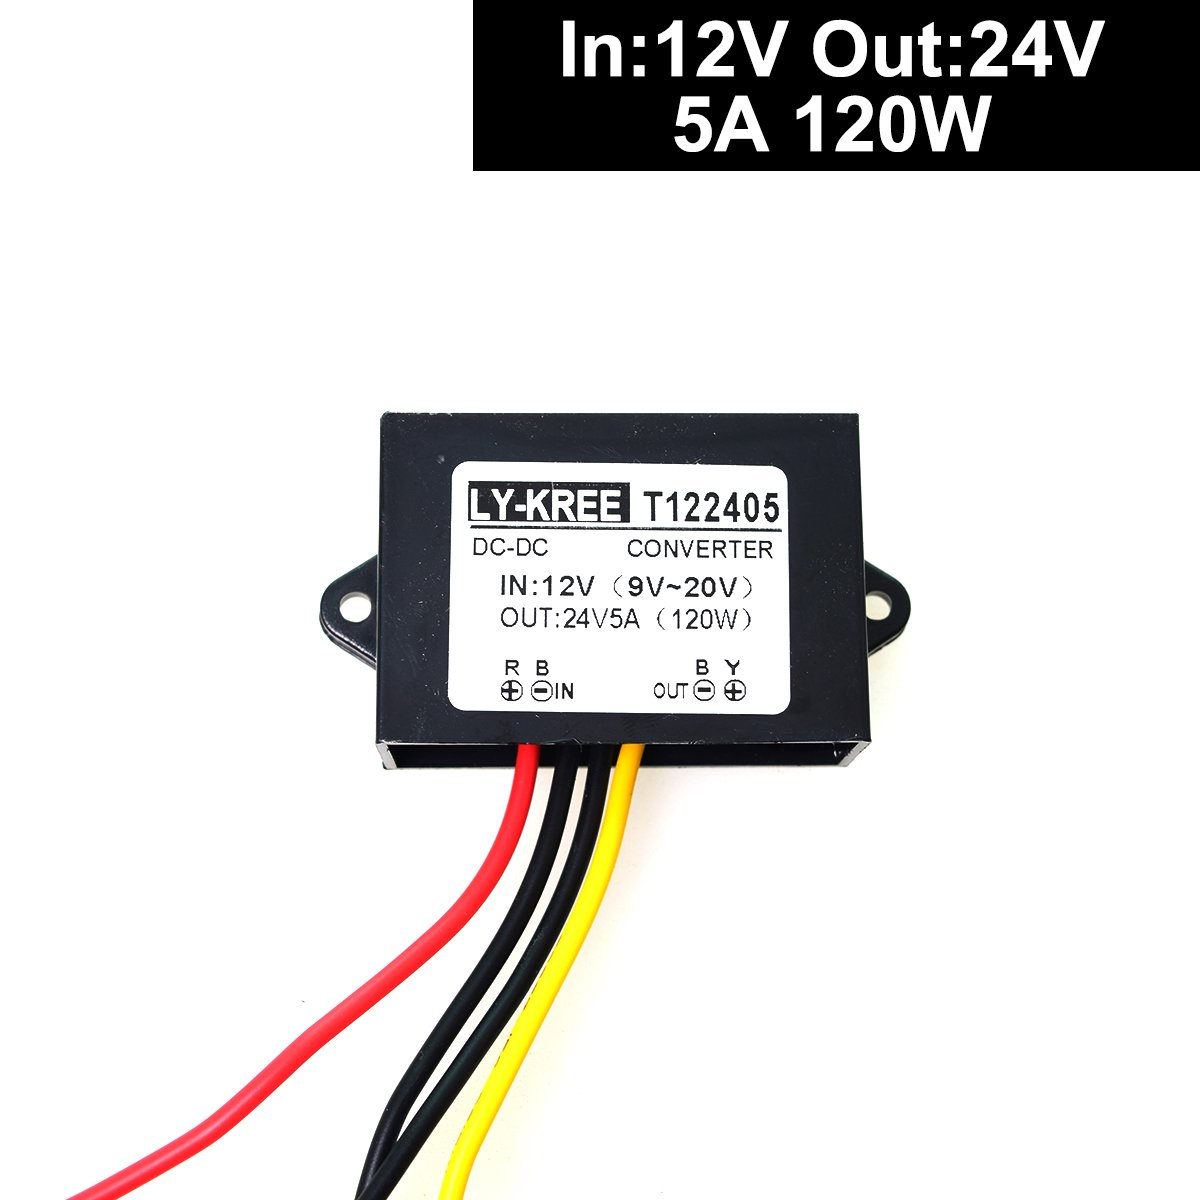 Dc 12v Step Up To 24v Converter Regulator 5a 120w Power Max9730 24w Class G Amplifier Supply Adapter For Motor Car Truck Vehicle Boat Solar System Etc